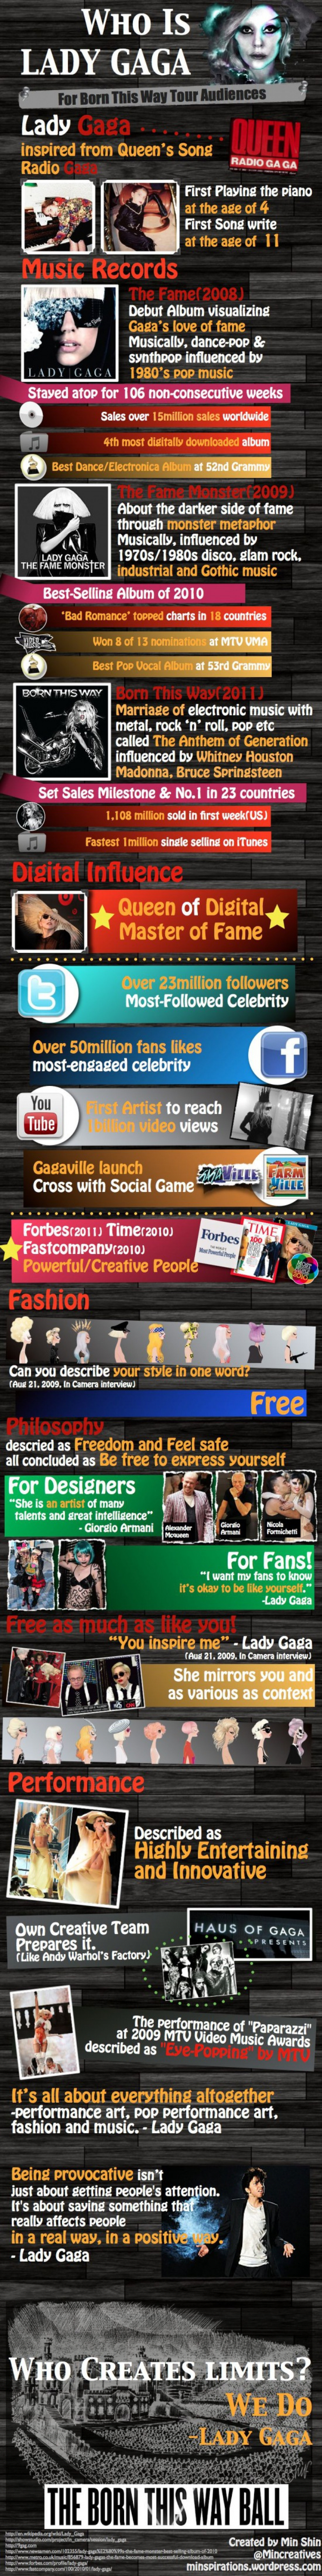 Infographic of Lady Gaga Infographic